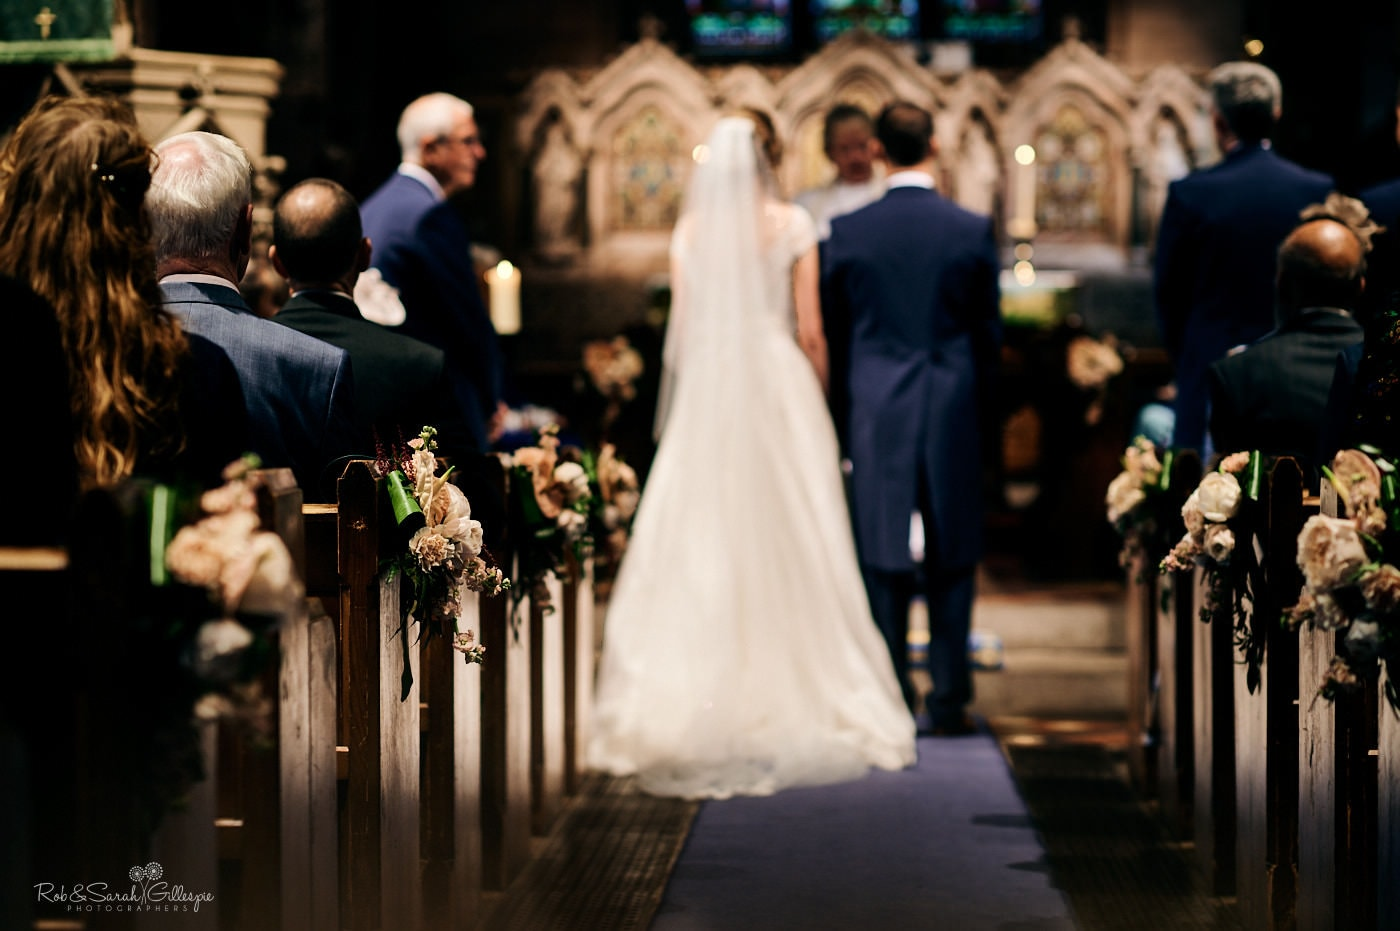 Wedding ceremony at St Peter's church Pedmore